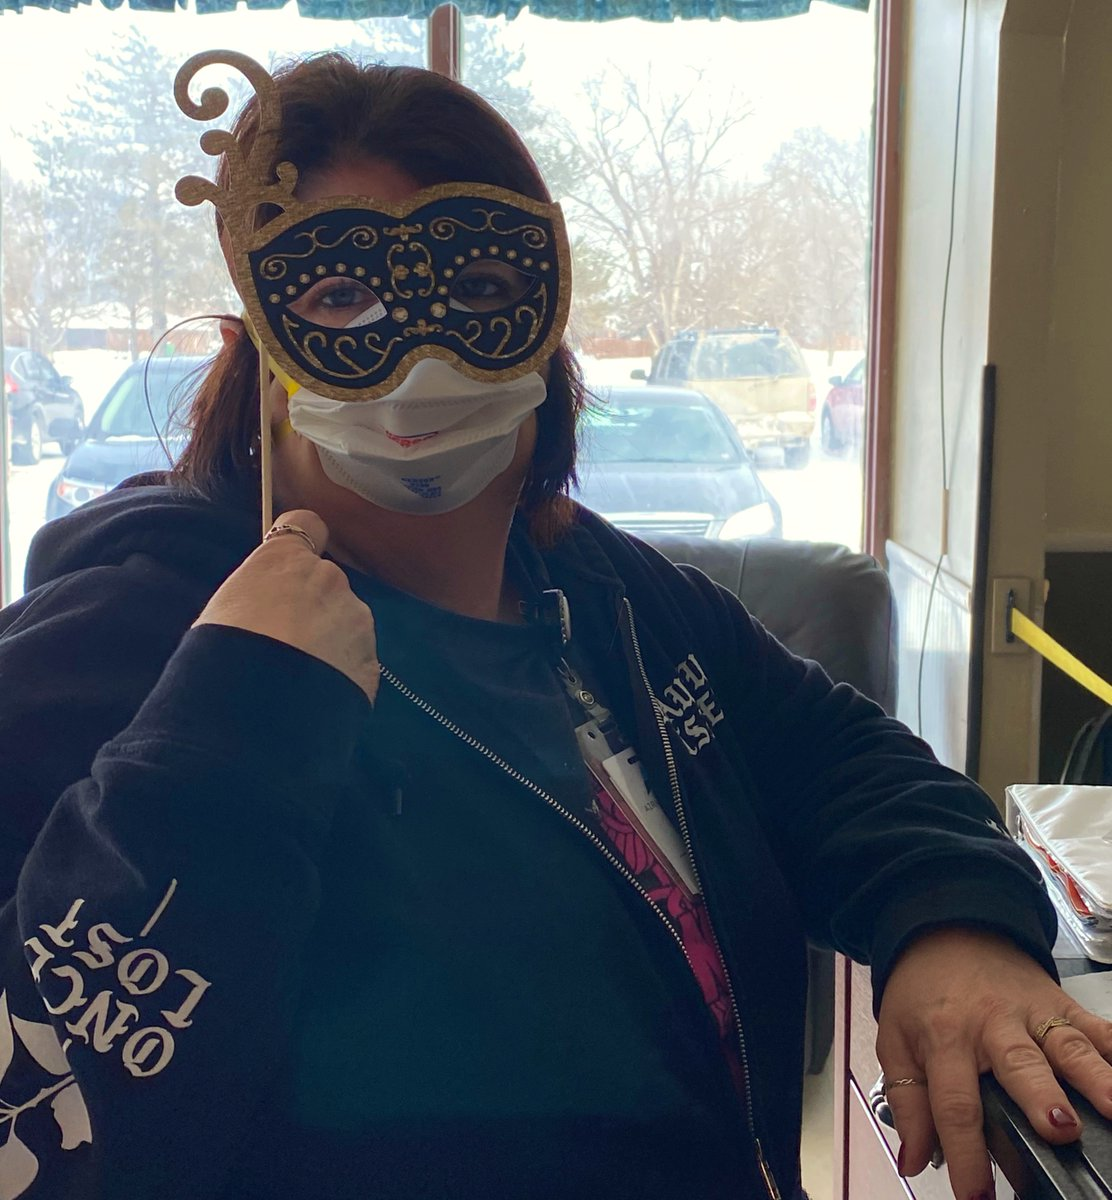 Part 1 of 2:   We had a great time celebrating Mardi Gras at #AzriaHealthCentralCity!   #AzriaHealth #MardiGras #Masks #Celebrate #Festive #FatTuesday